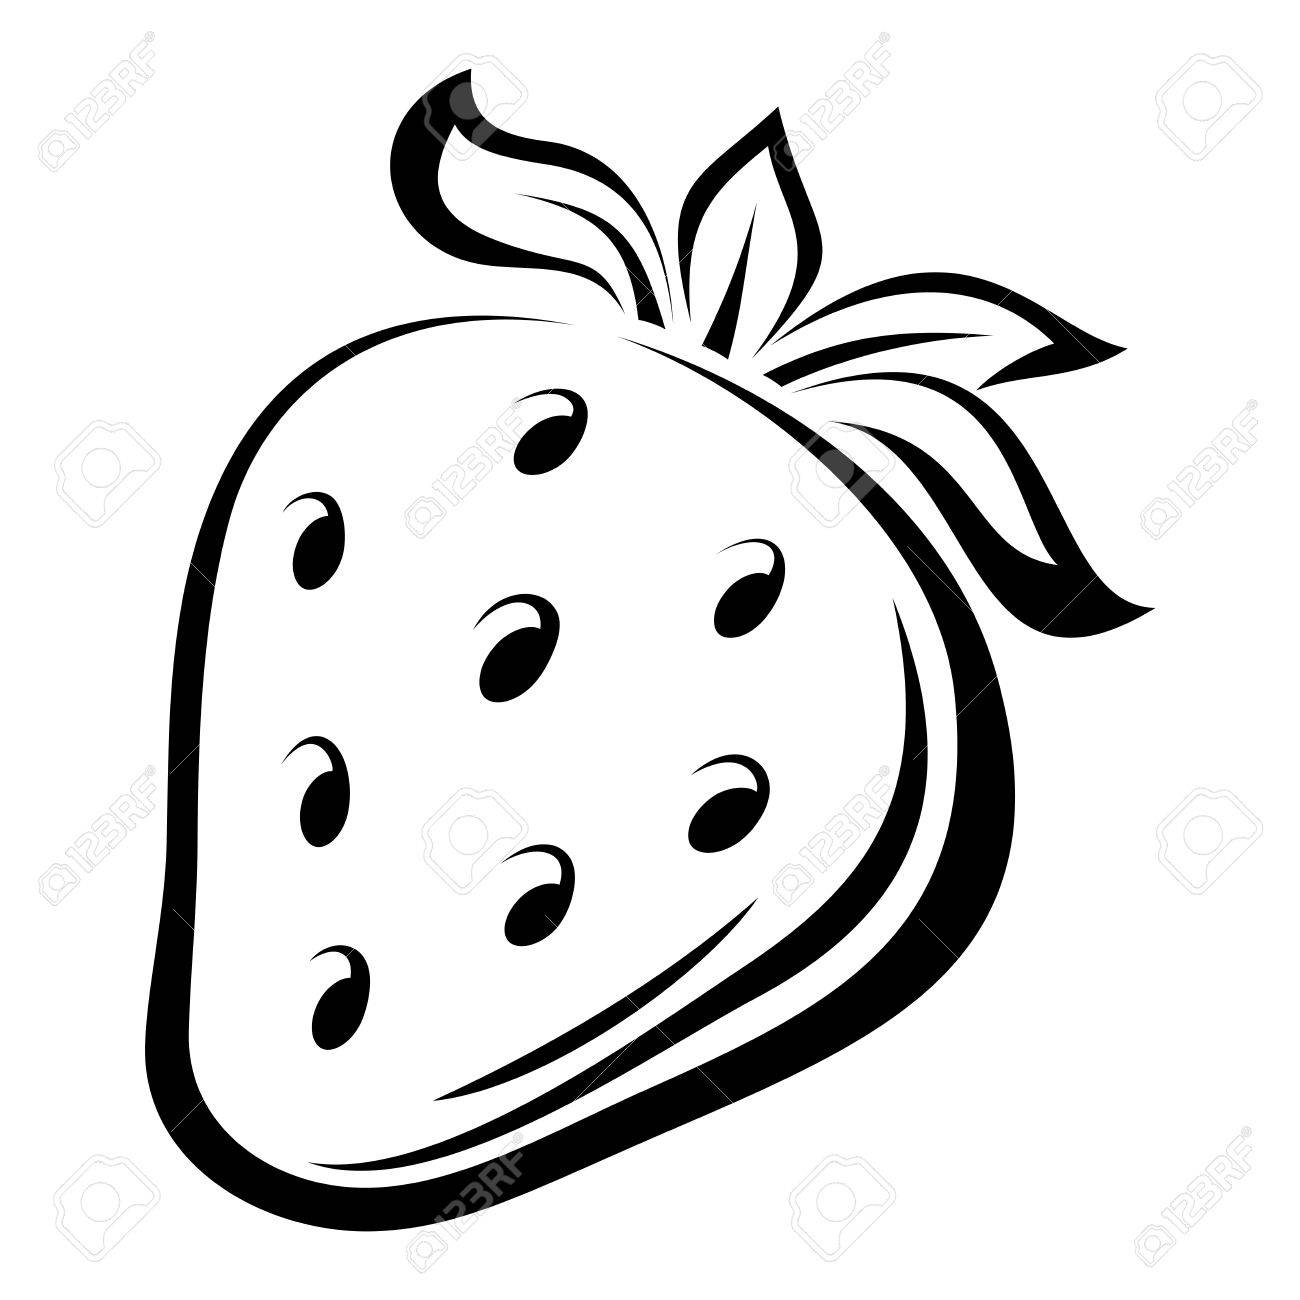 Contour drawing of strawberry Vector illustration - 26552513